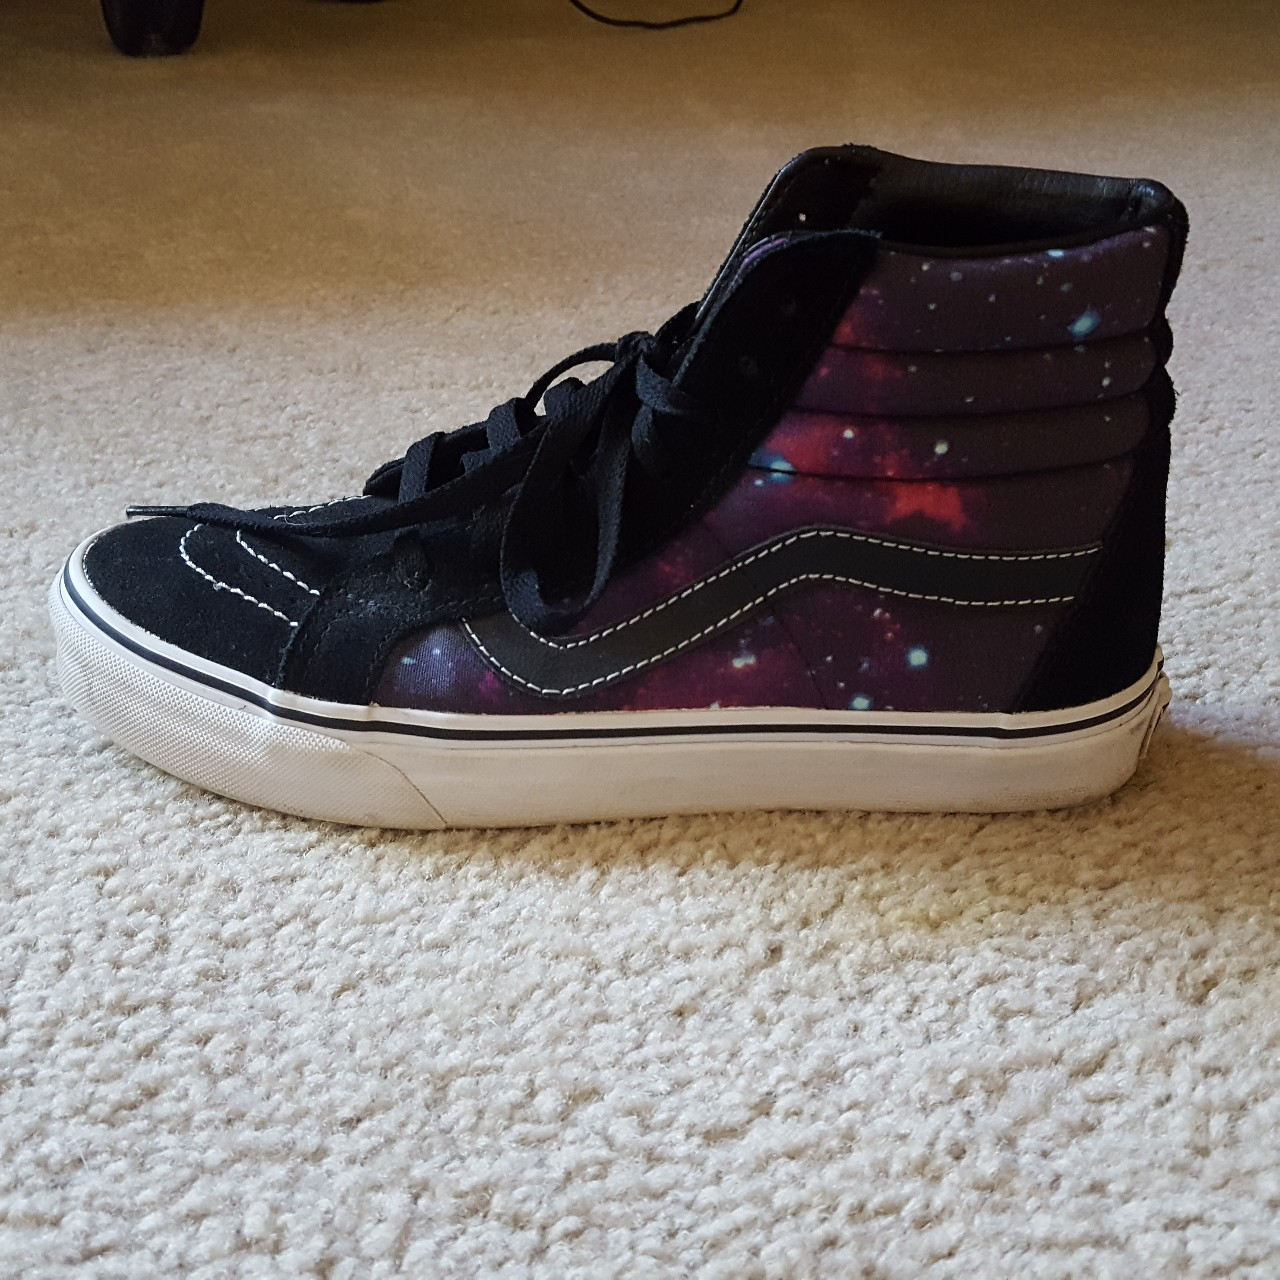 Galaxy high top vans. Gently used